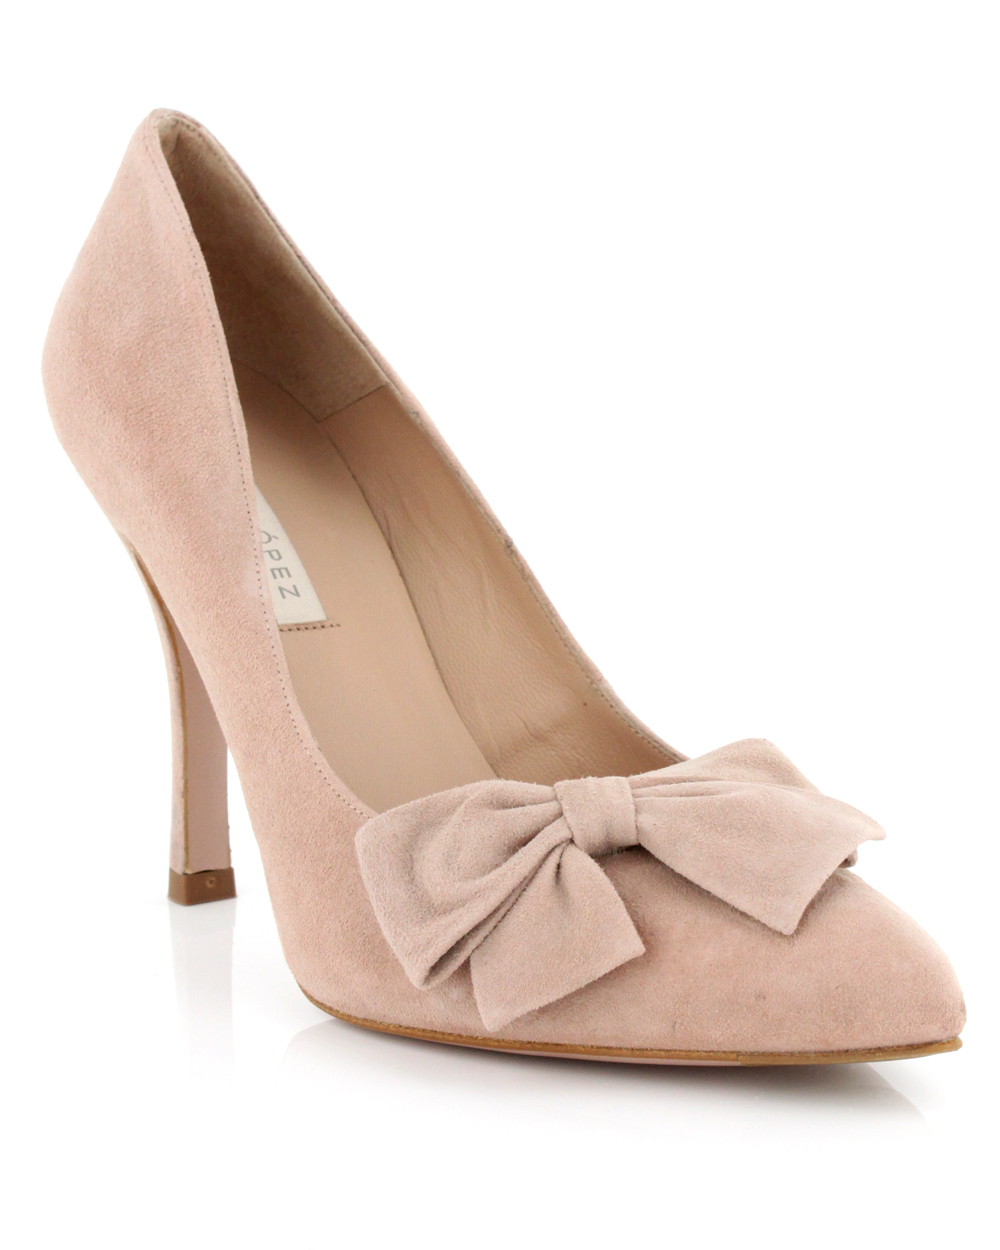 c8fbdbed31bb Lyst - Pura López Nude Suede Bow Pump in Natural